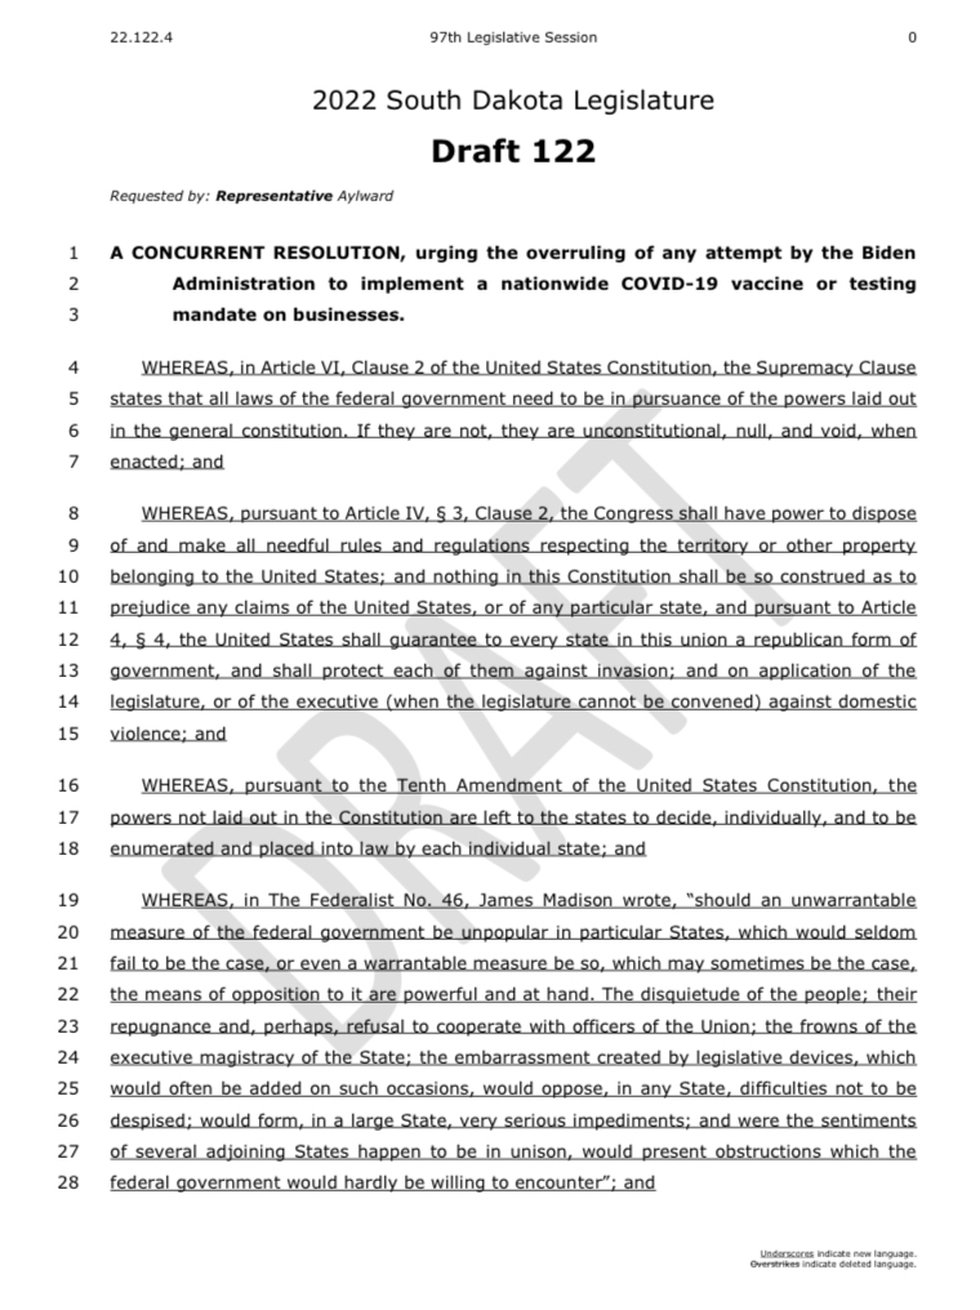 The South Dakota State Legislature has proposed a resolution that they intend to bring during...